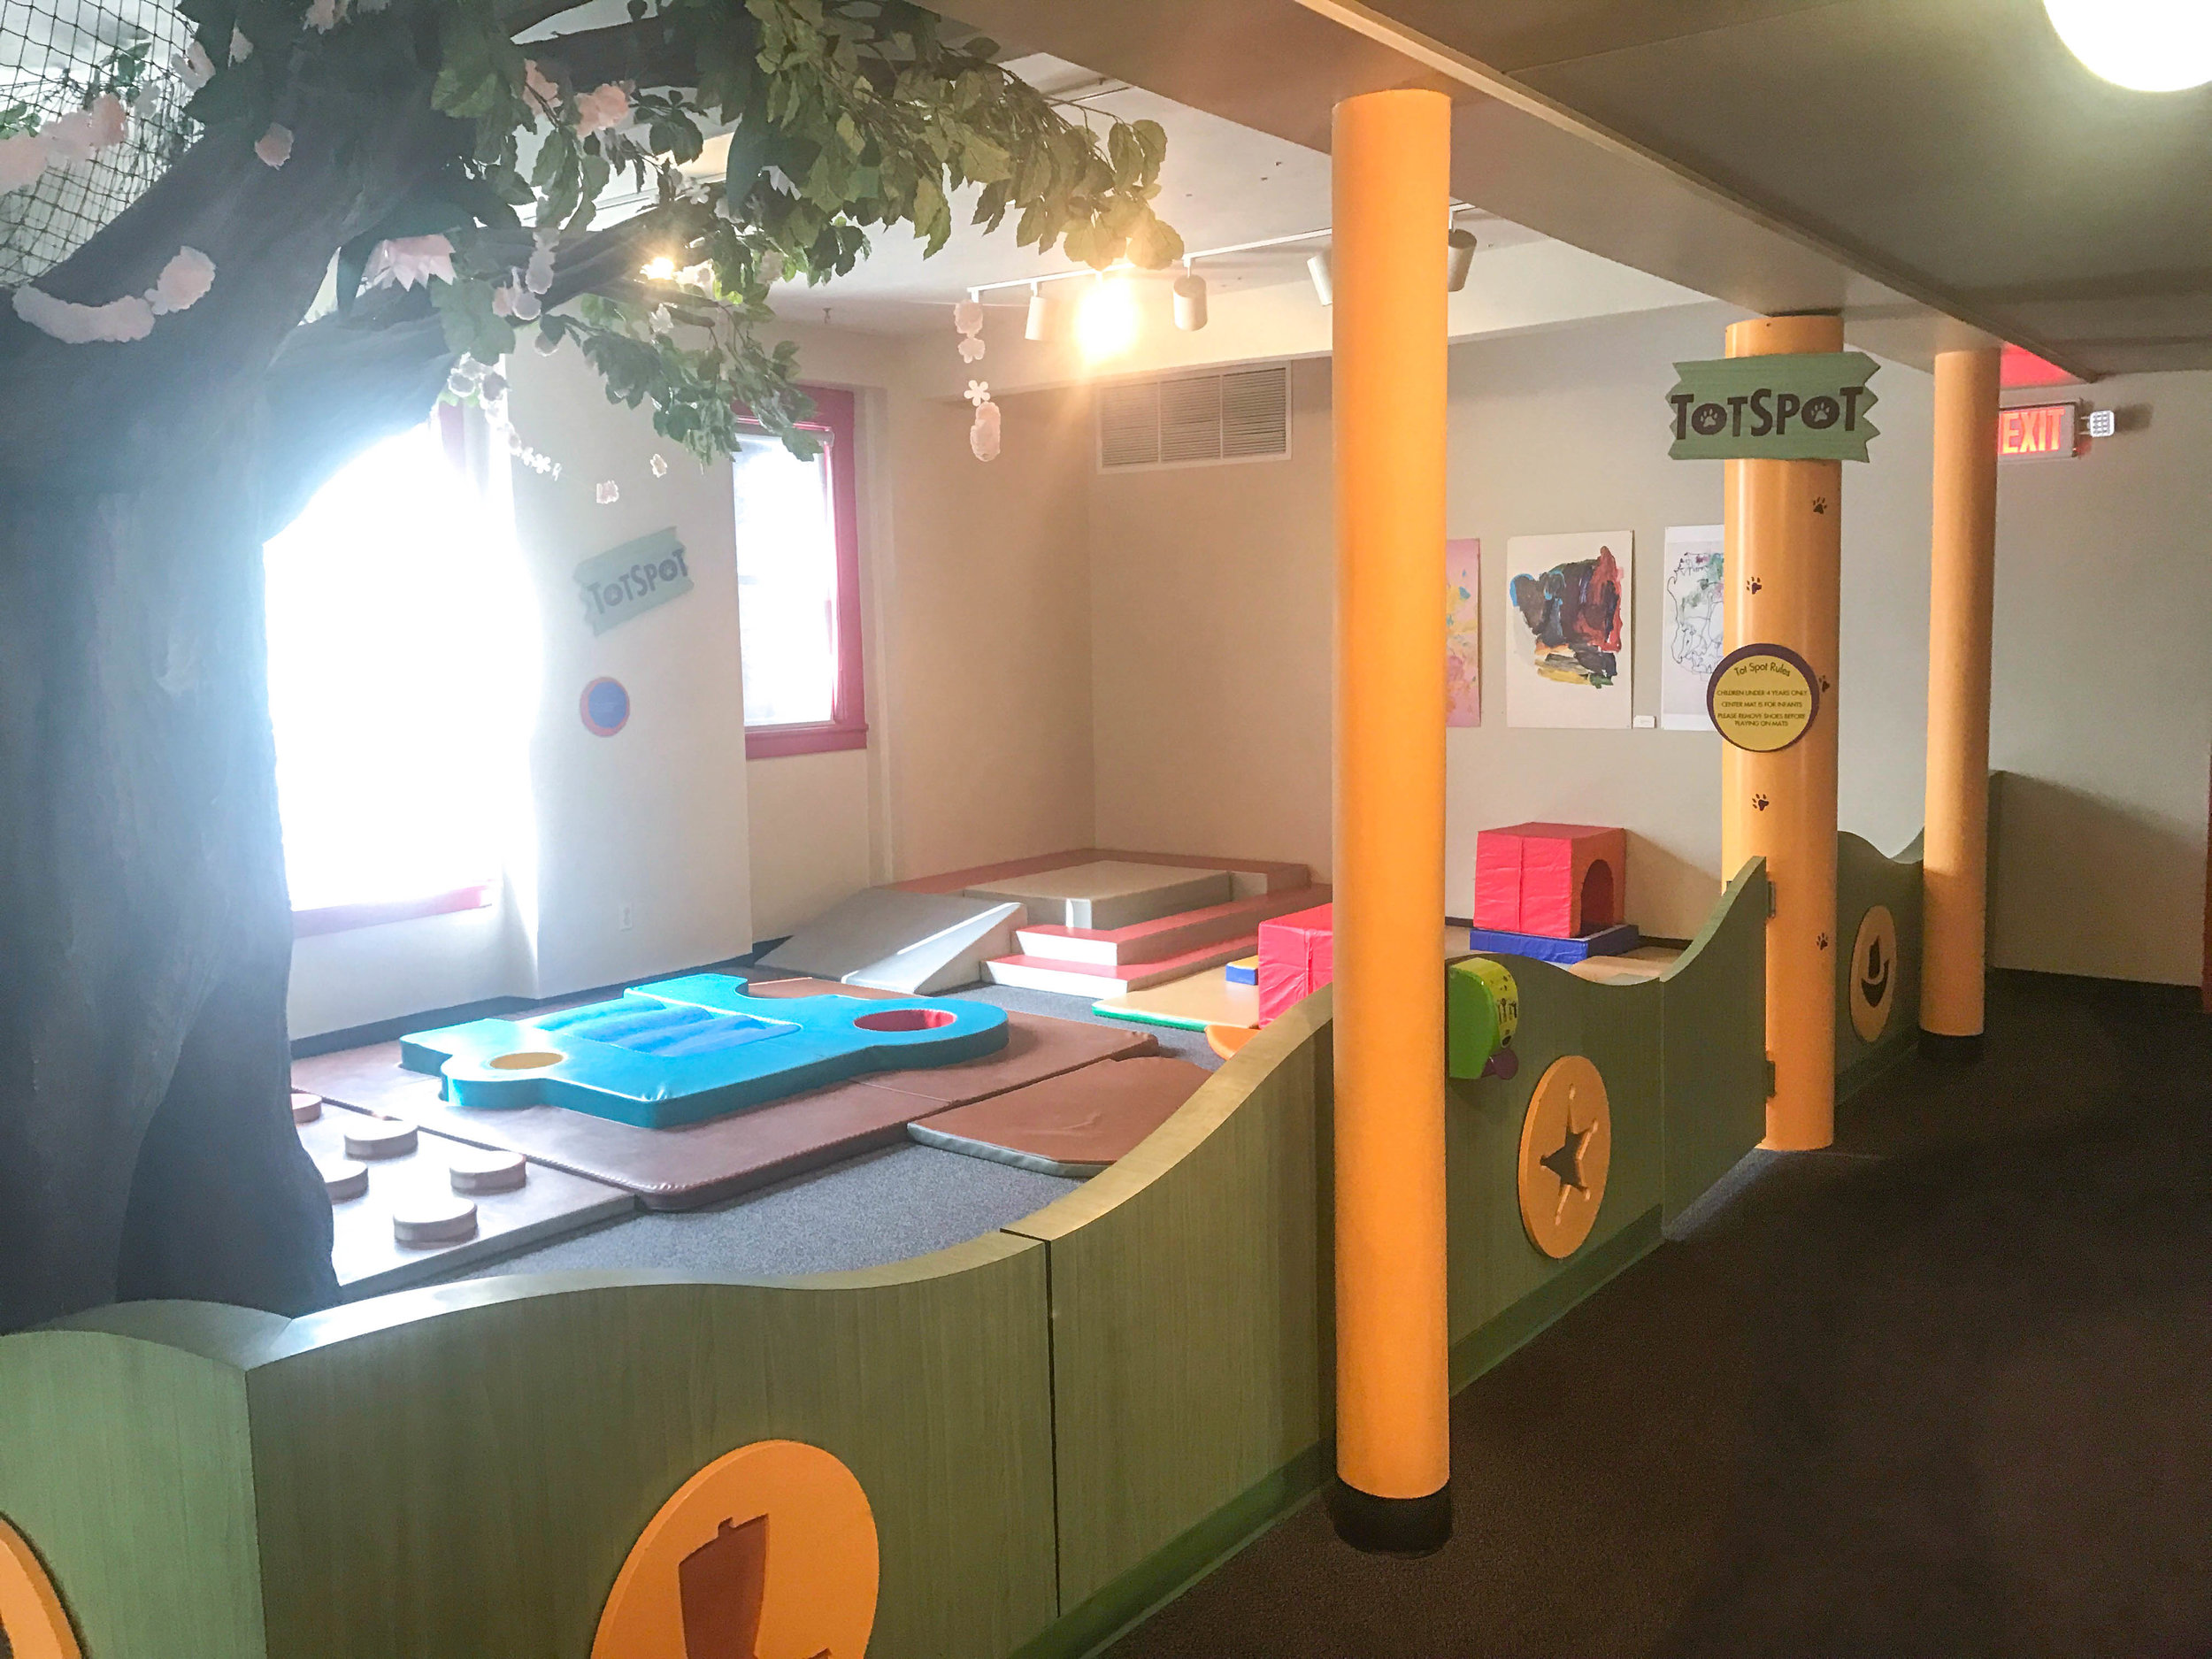 A special spot just for kids under age 4 to explore and build.